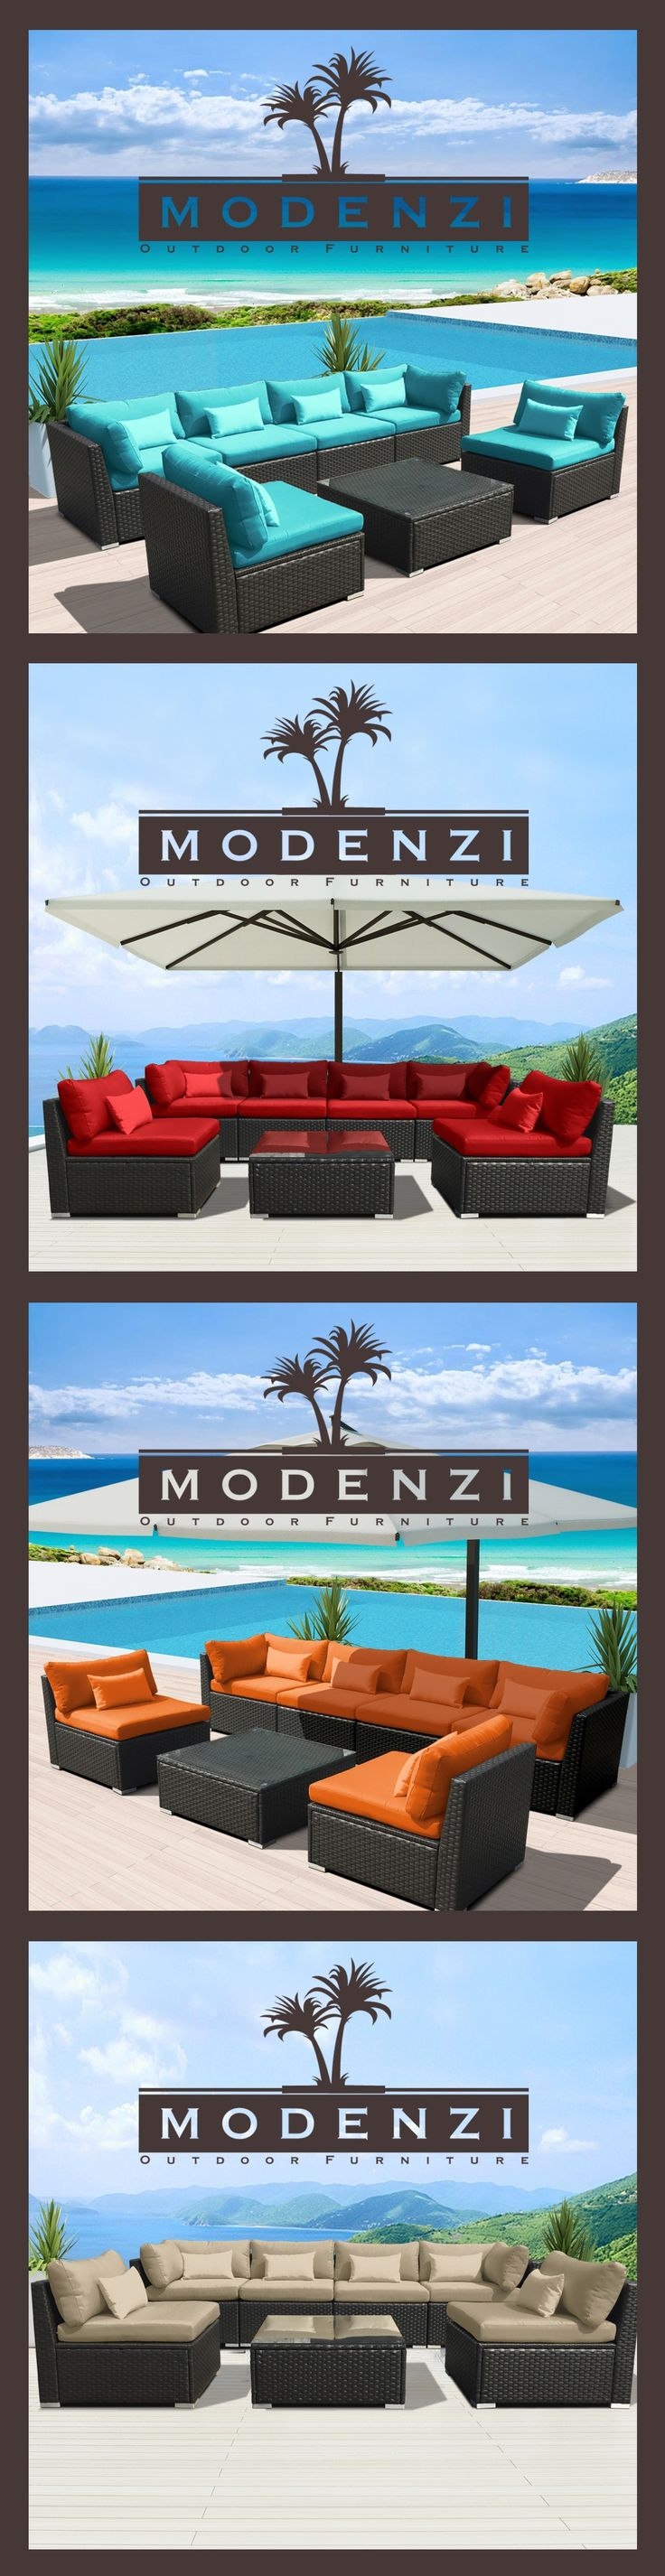 For a Limited time @ $699 Including shipping Modern Modenzi 7G-U Outdoor Sectional Patio Furniture Espresso Brown Wicker Sofa Set (Turquoise)